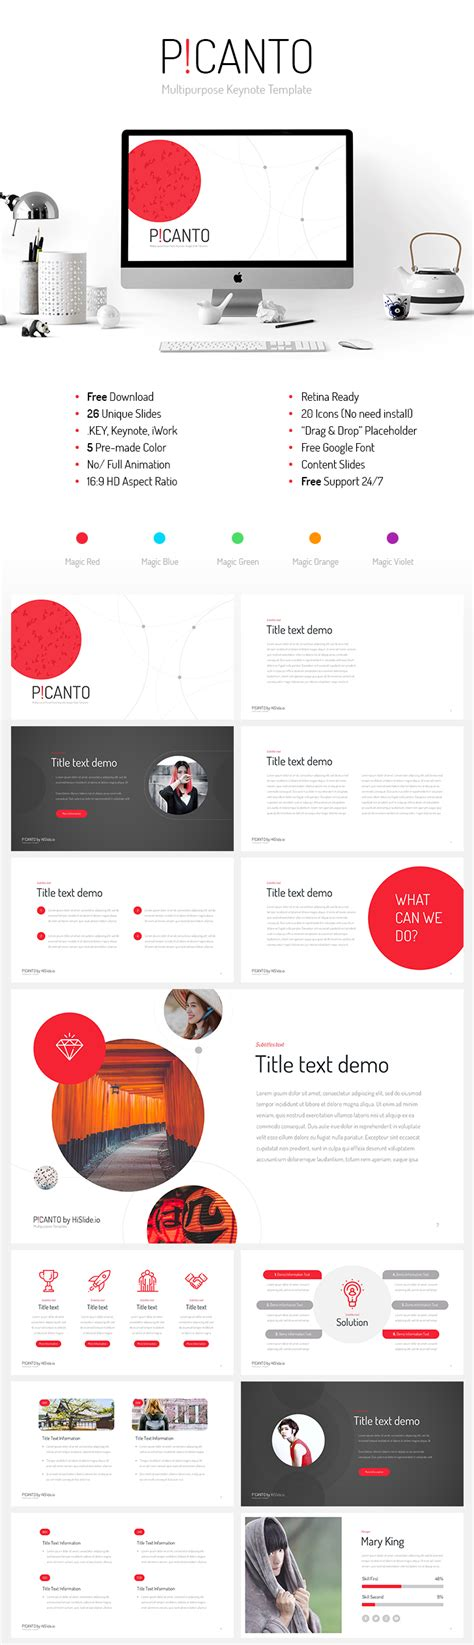 Free Keynote Templates Picanto Keynote Template Free Now Premium Design